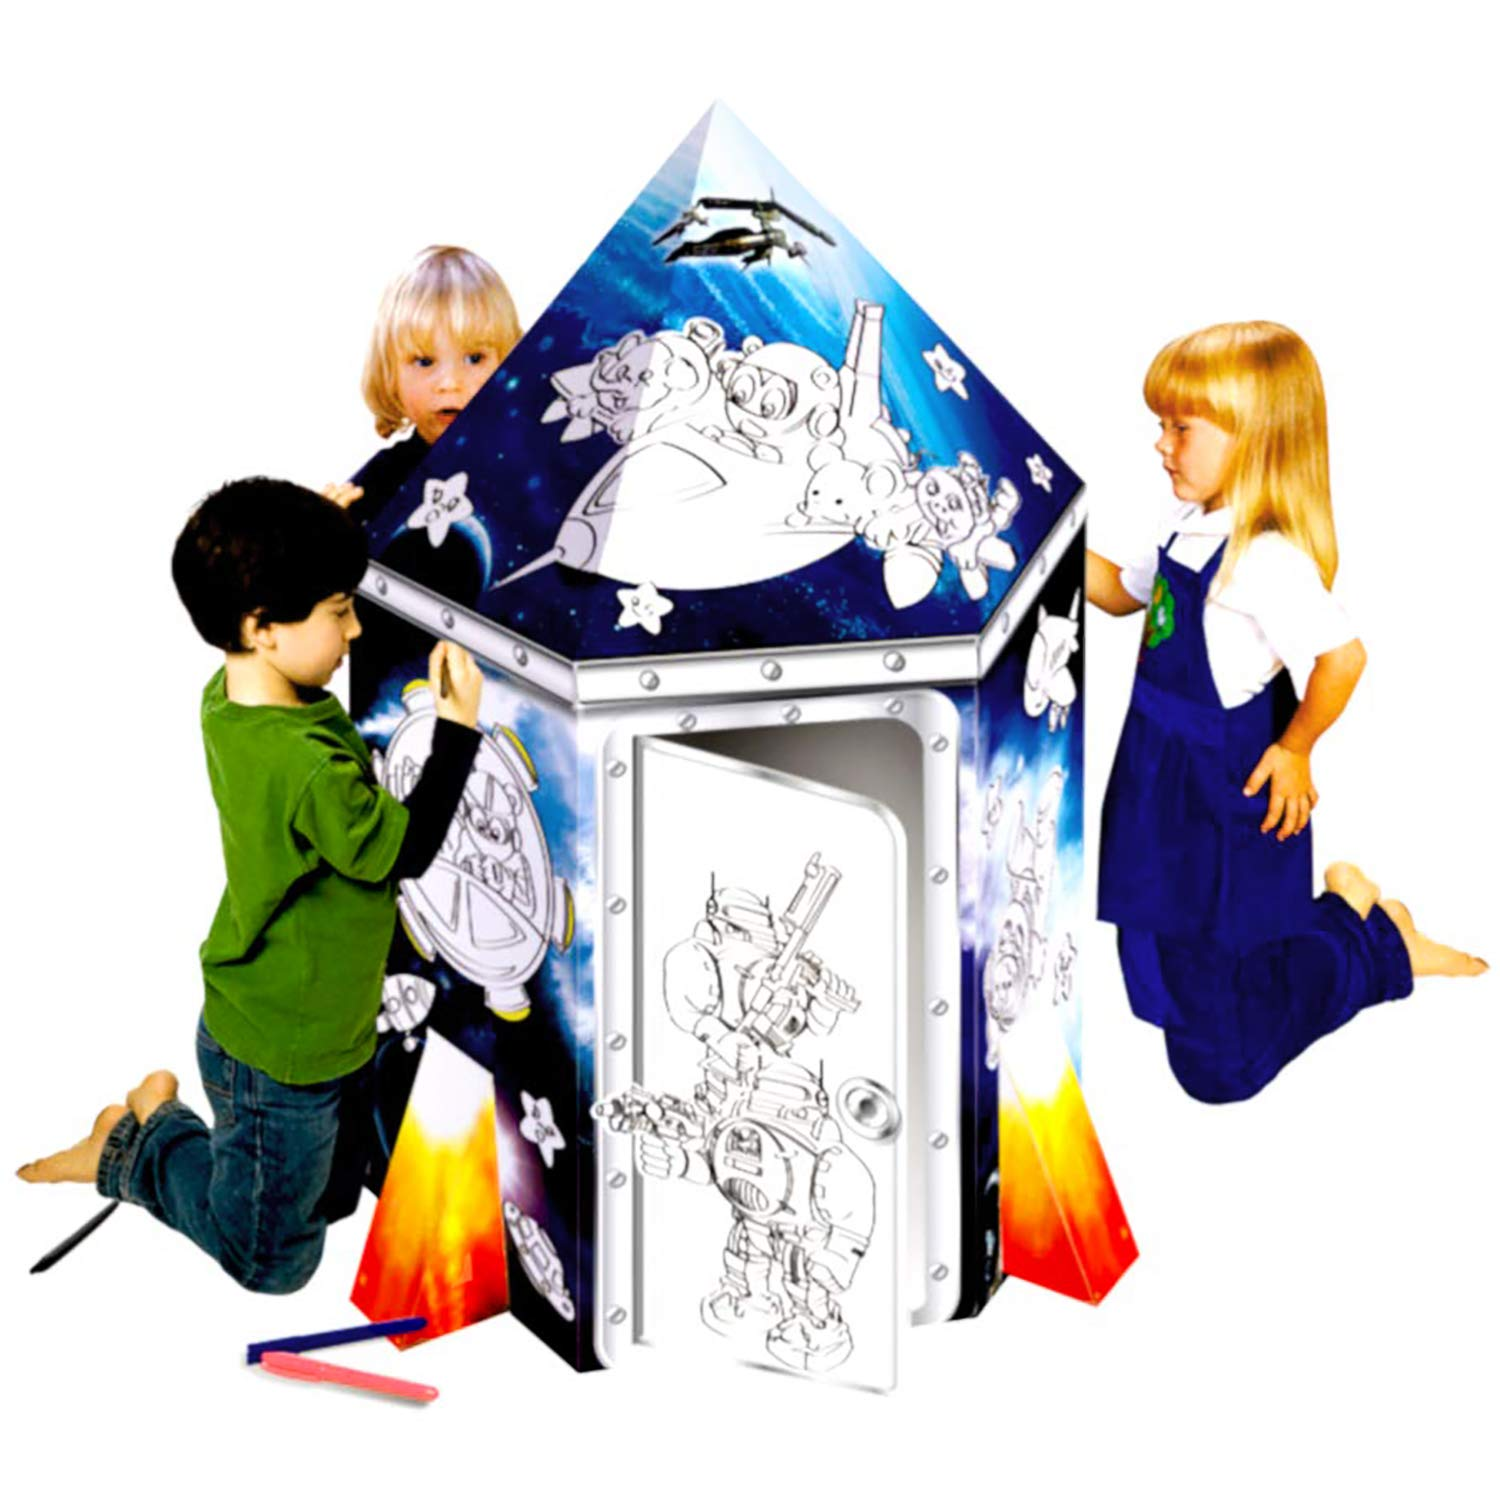 UC Global Trade Inc Rocket Ship Playhouse for Creative Coloring – Cardboard House for Kids and Additional Sticker Decorations